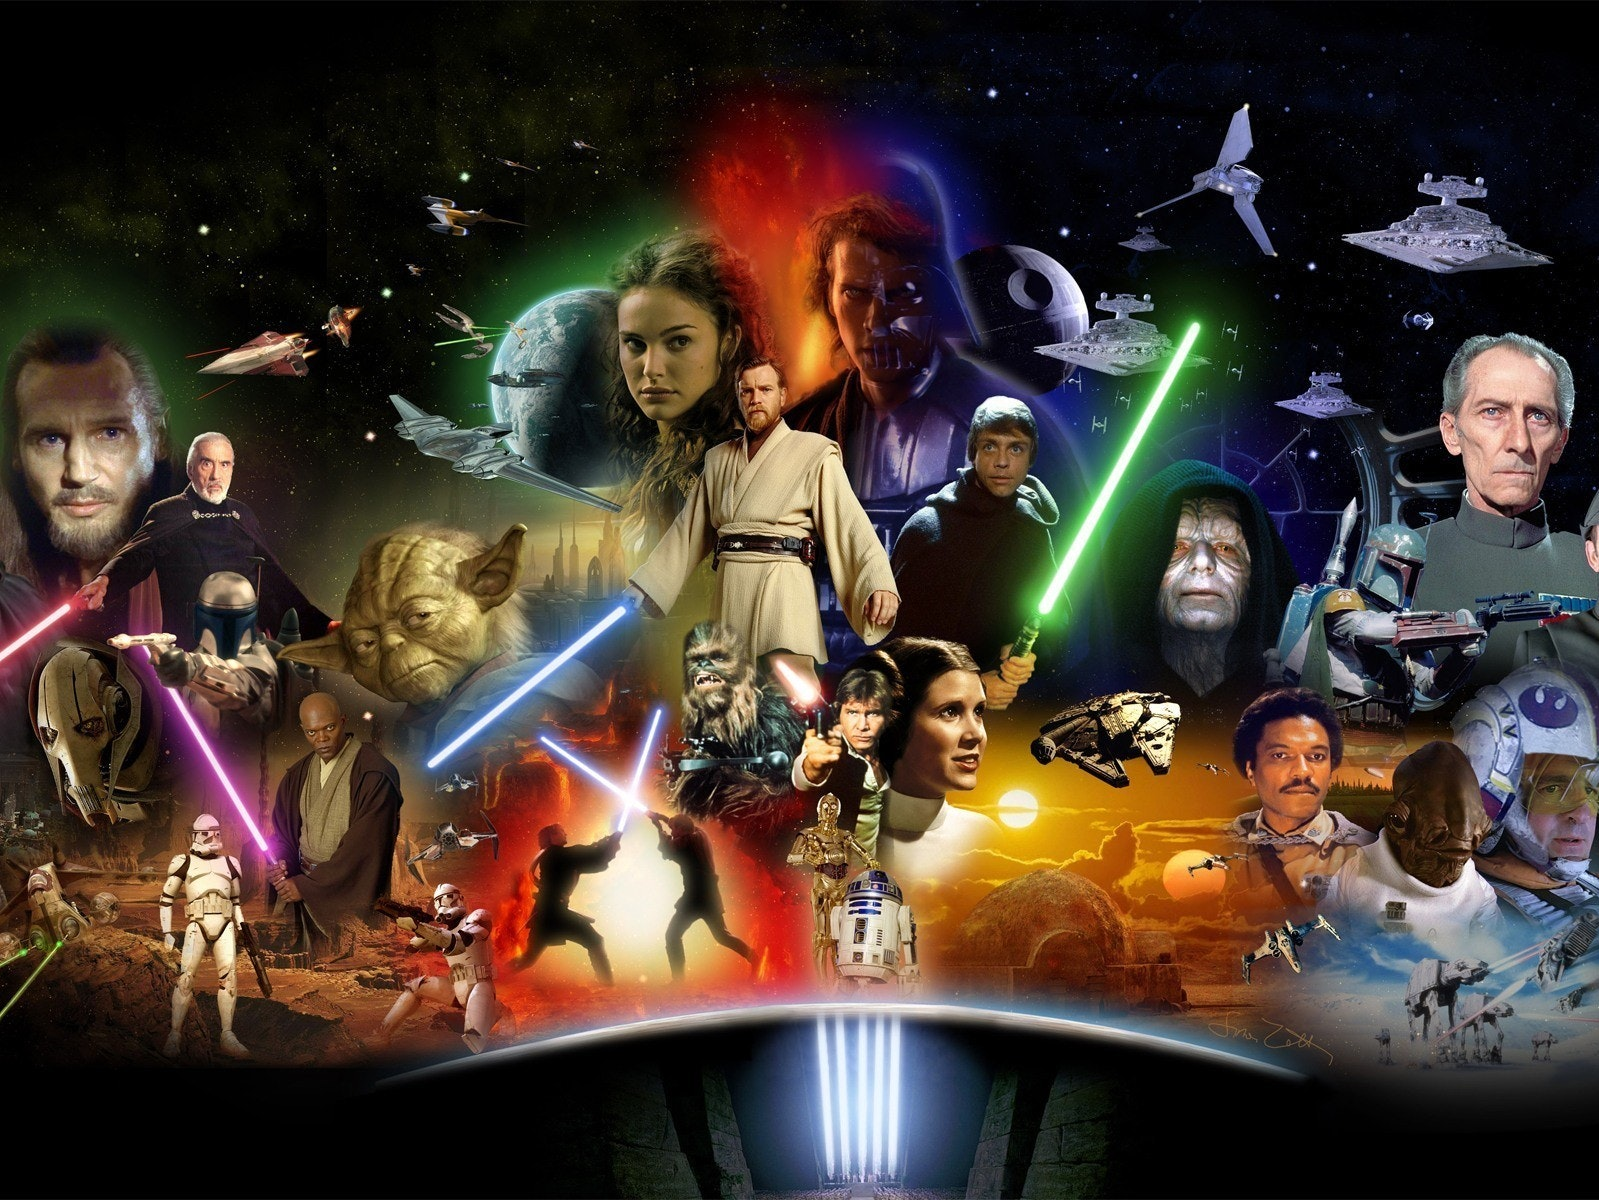 A 'Star Wars' Primer: All Six Movies in Synopsis, Under 100 Words Apiece